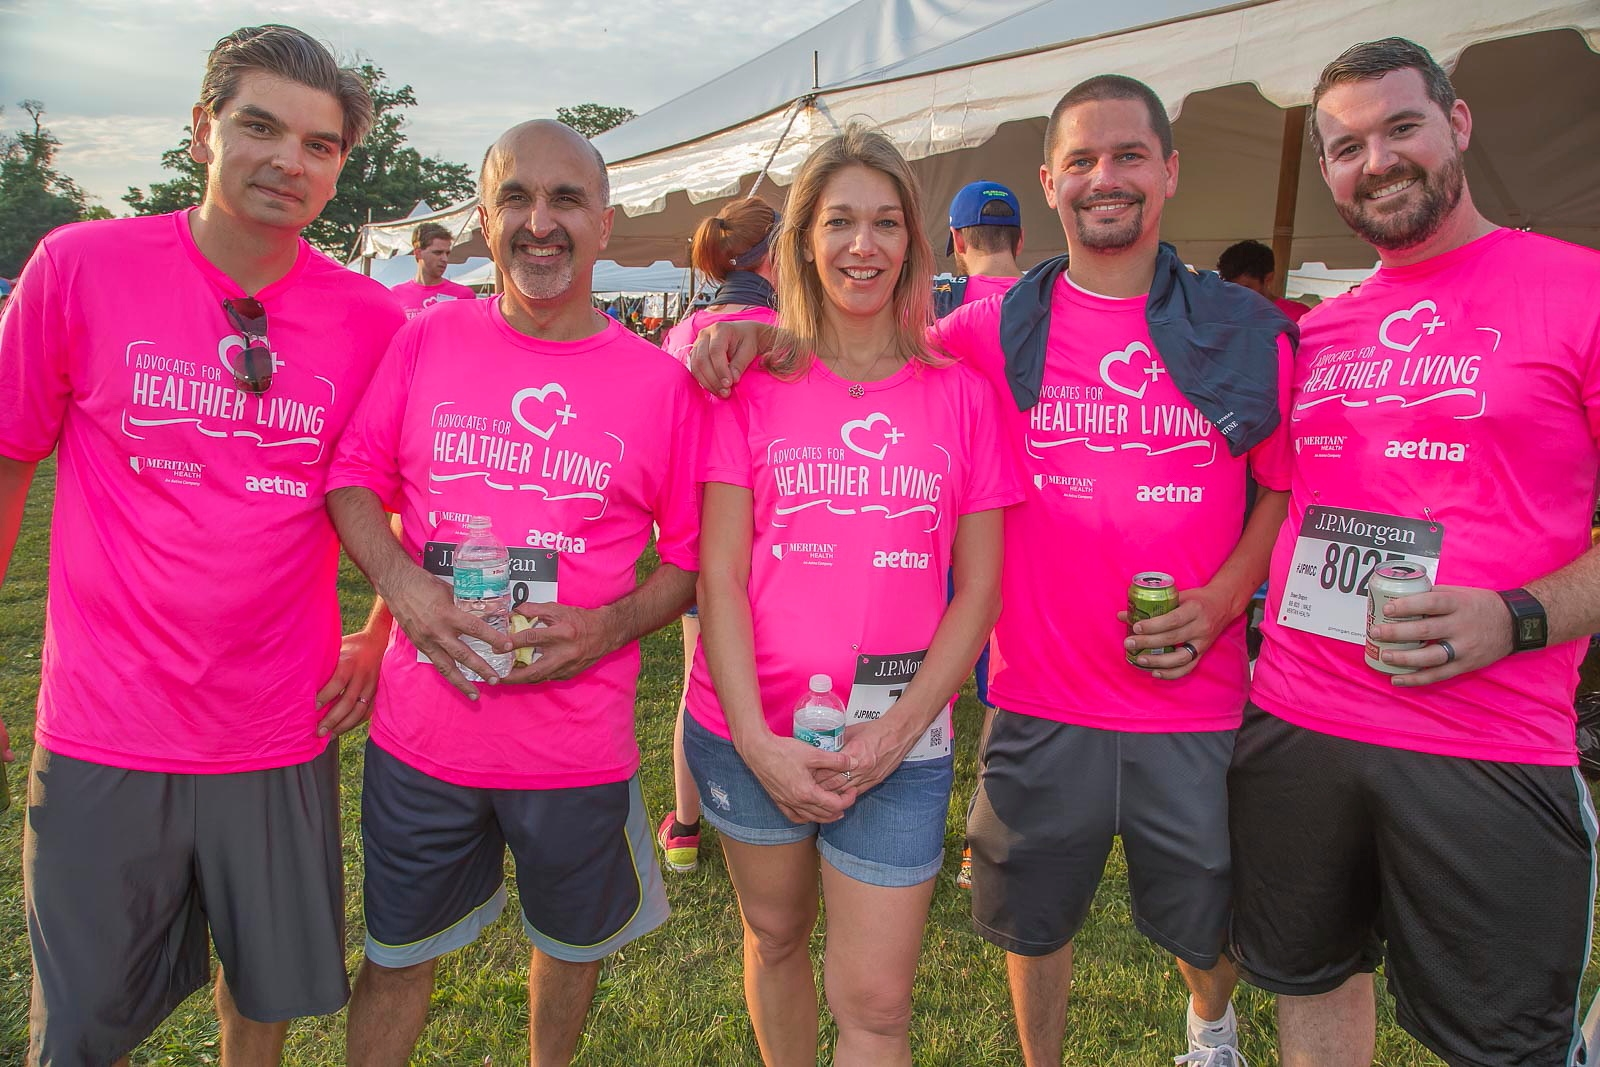 Advocates For Healthier Living at the 2015 Corporate Challenge. (Don Nieman/Special to The News)